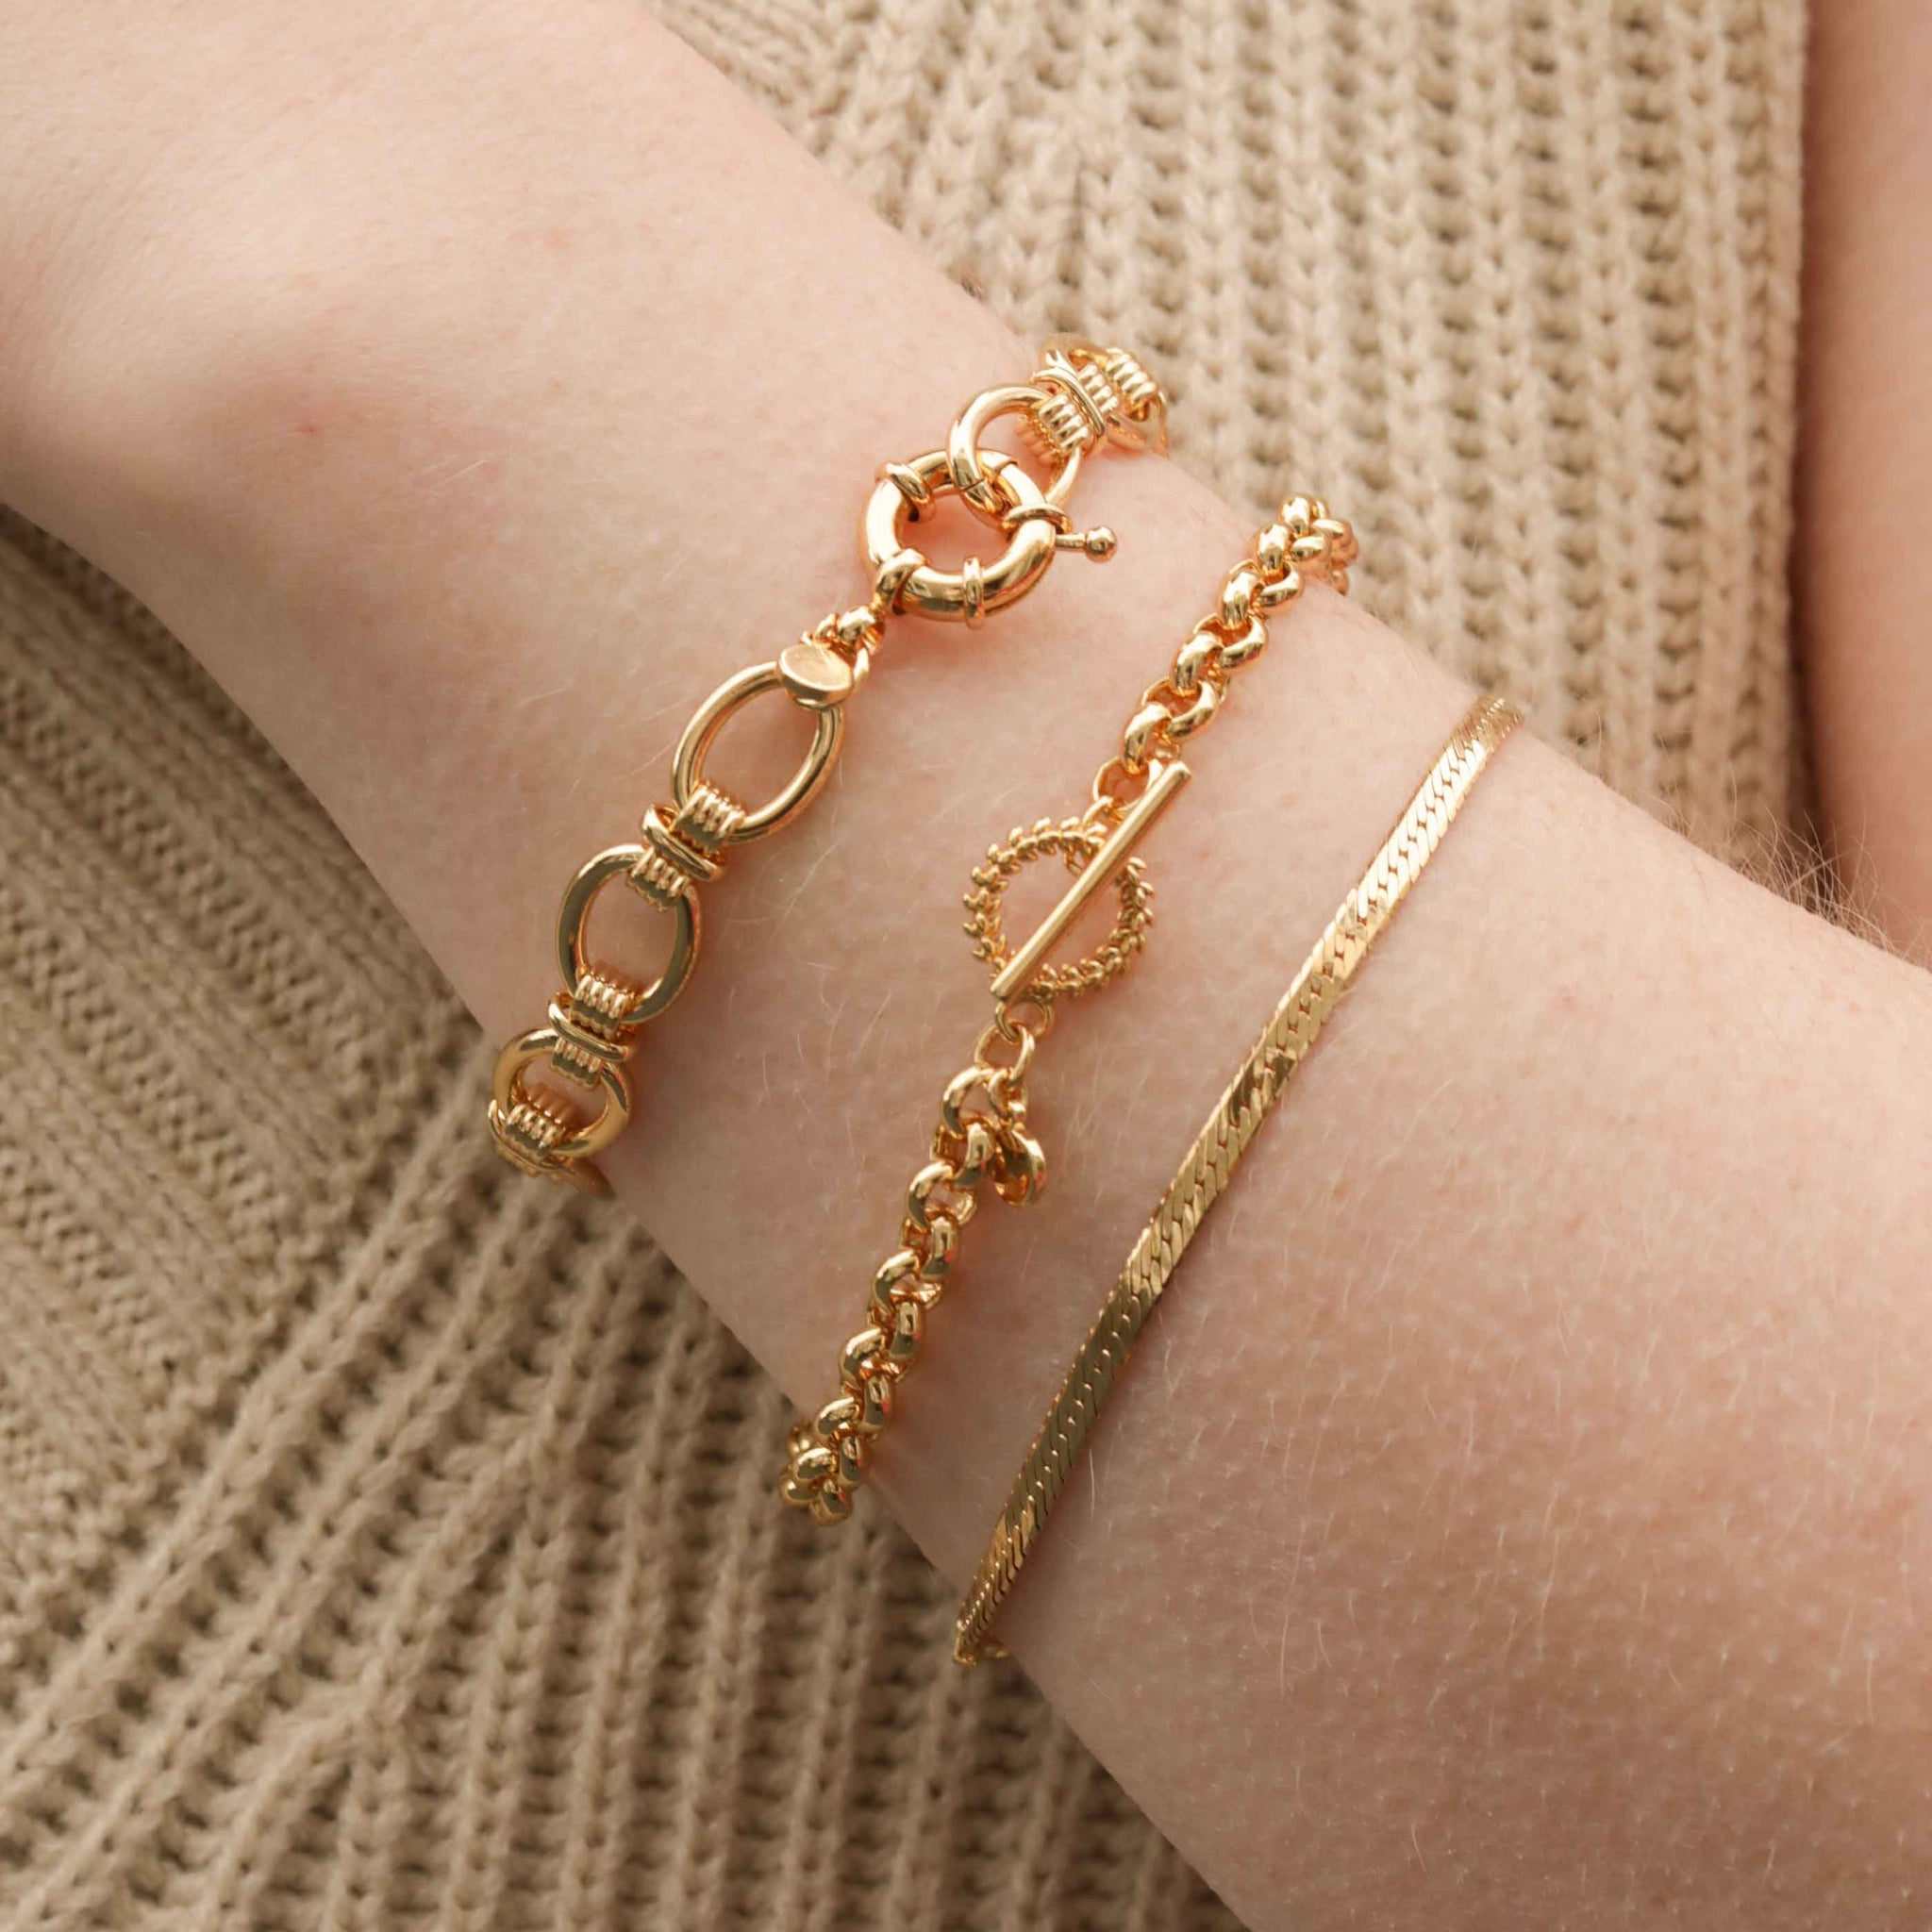 Wreath T-Bar Chunky Bracelet in Gold